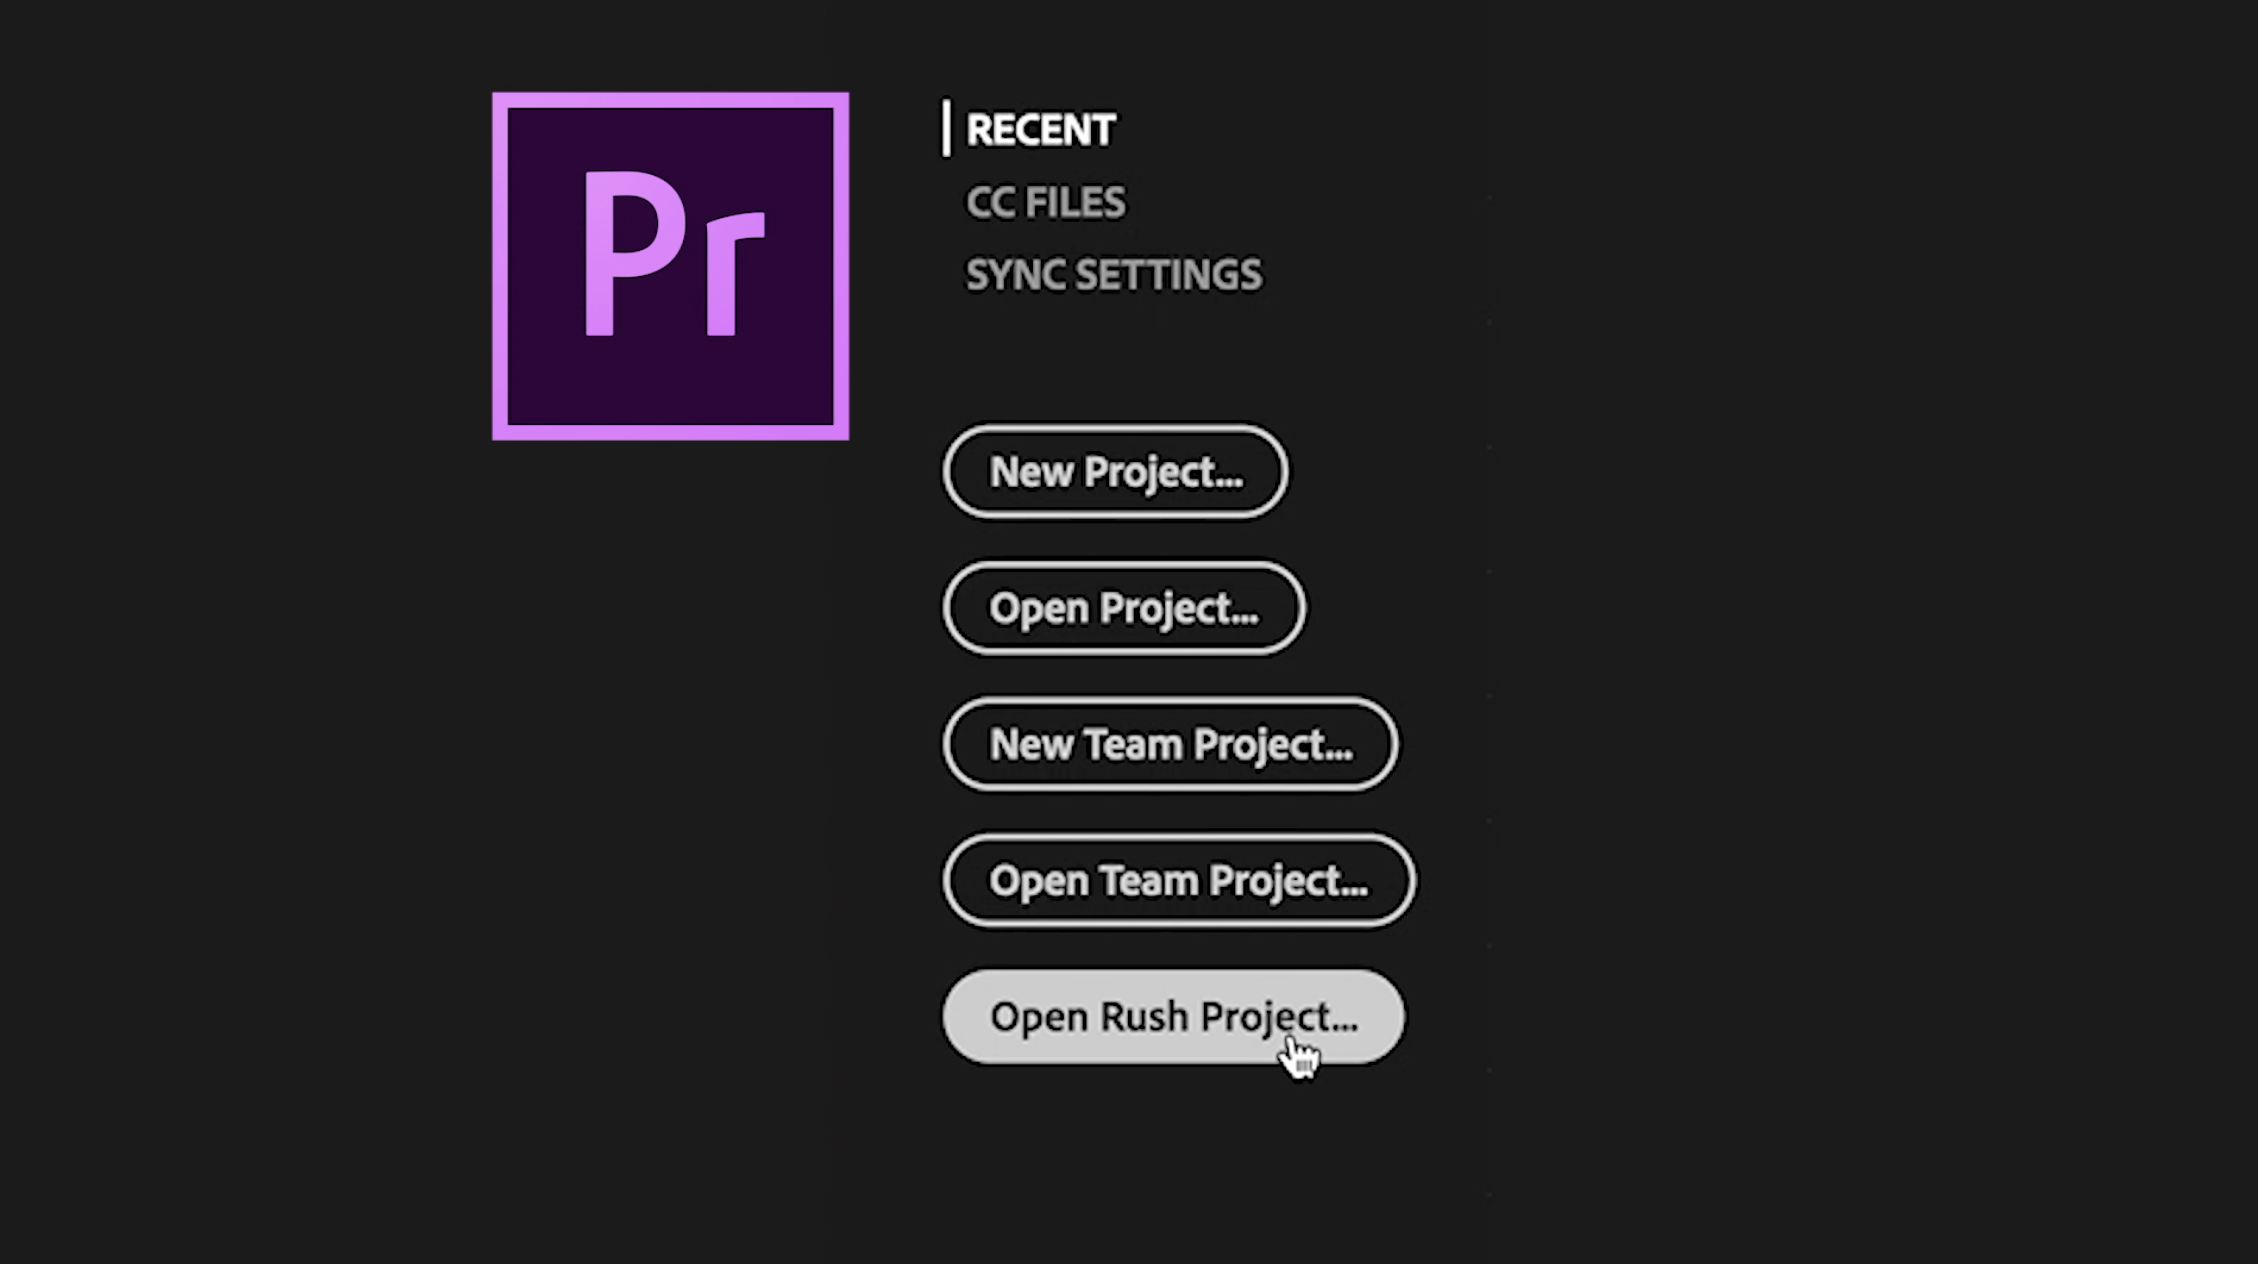 First Look at Adobe's New Video Editing Software: PROJECT